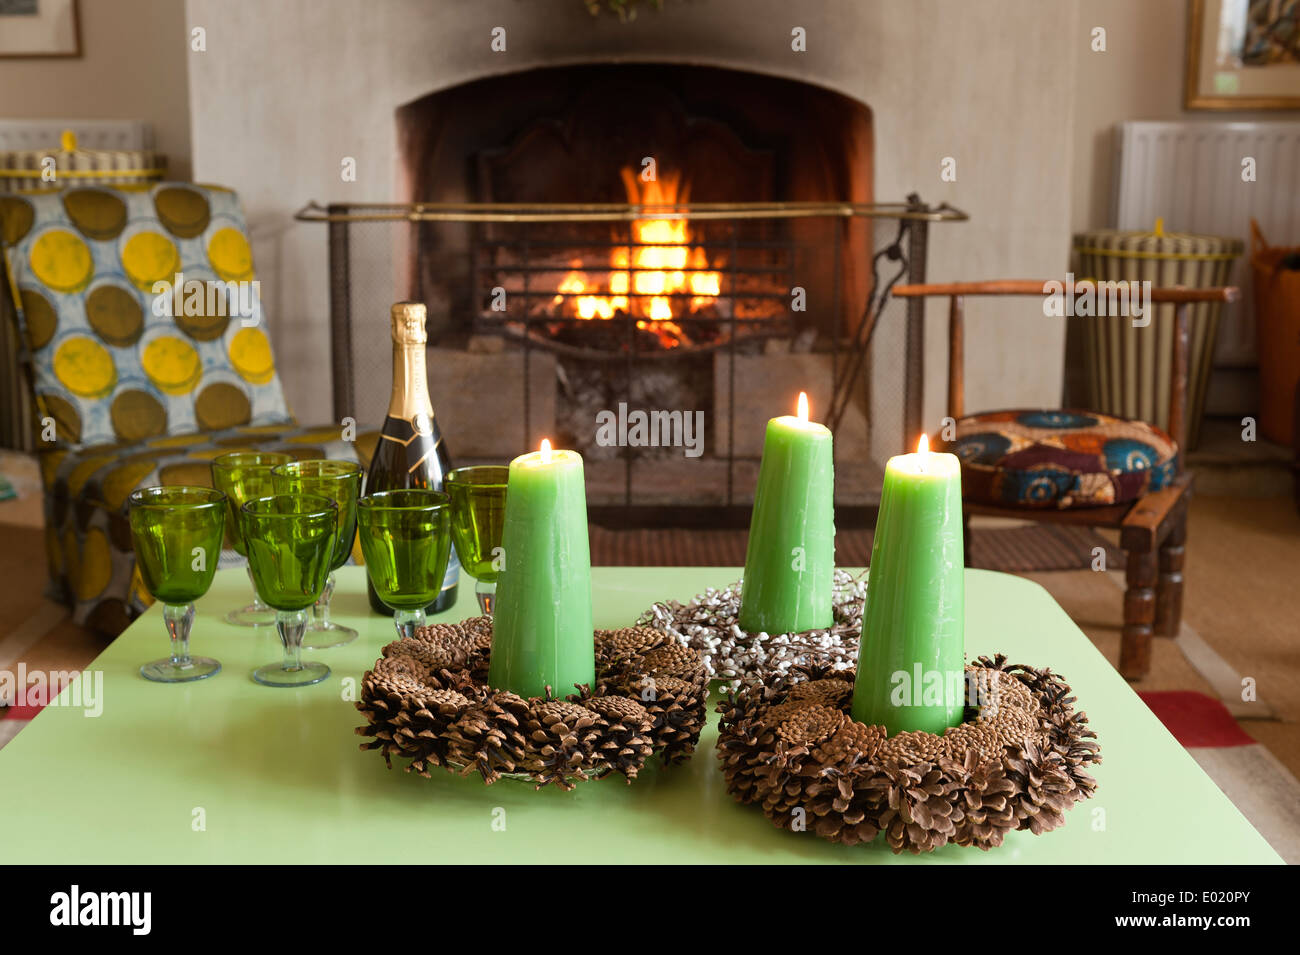 Green candles in cone candle holders on green tabletop with green glassware - Stock Image